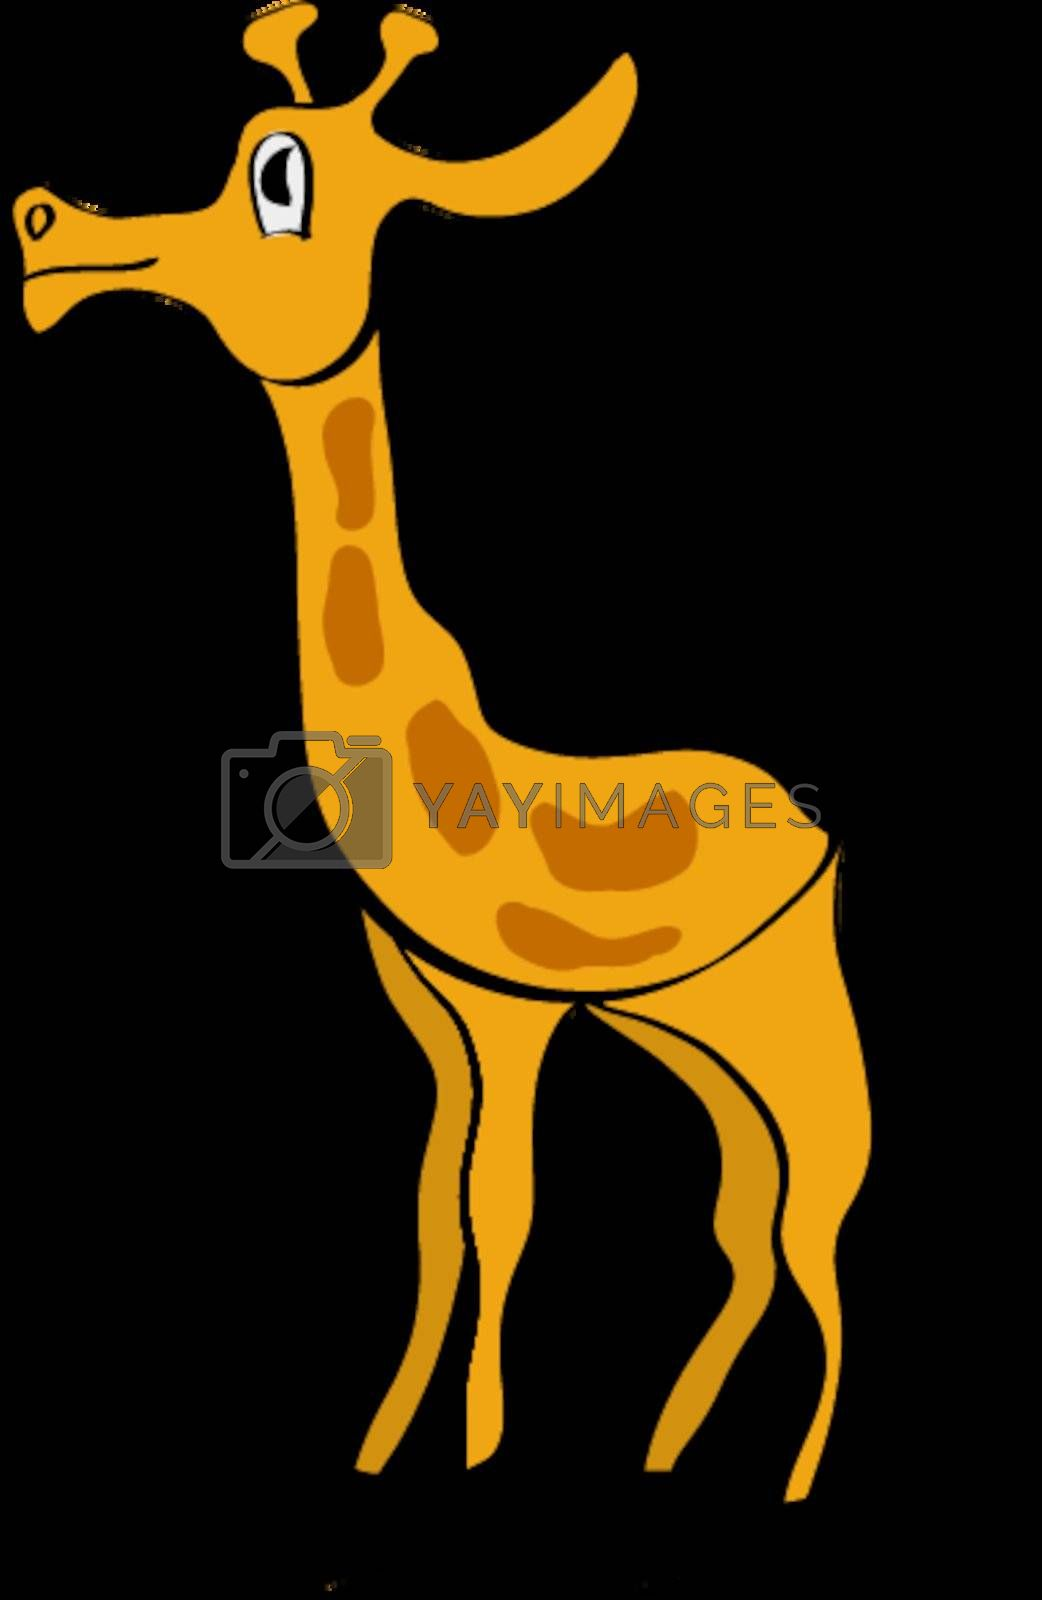 Royalty free image of Cartoon illustration of giraffe by Perysty